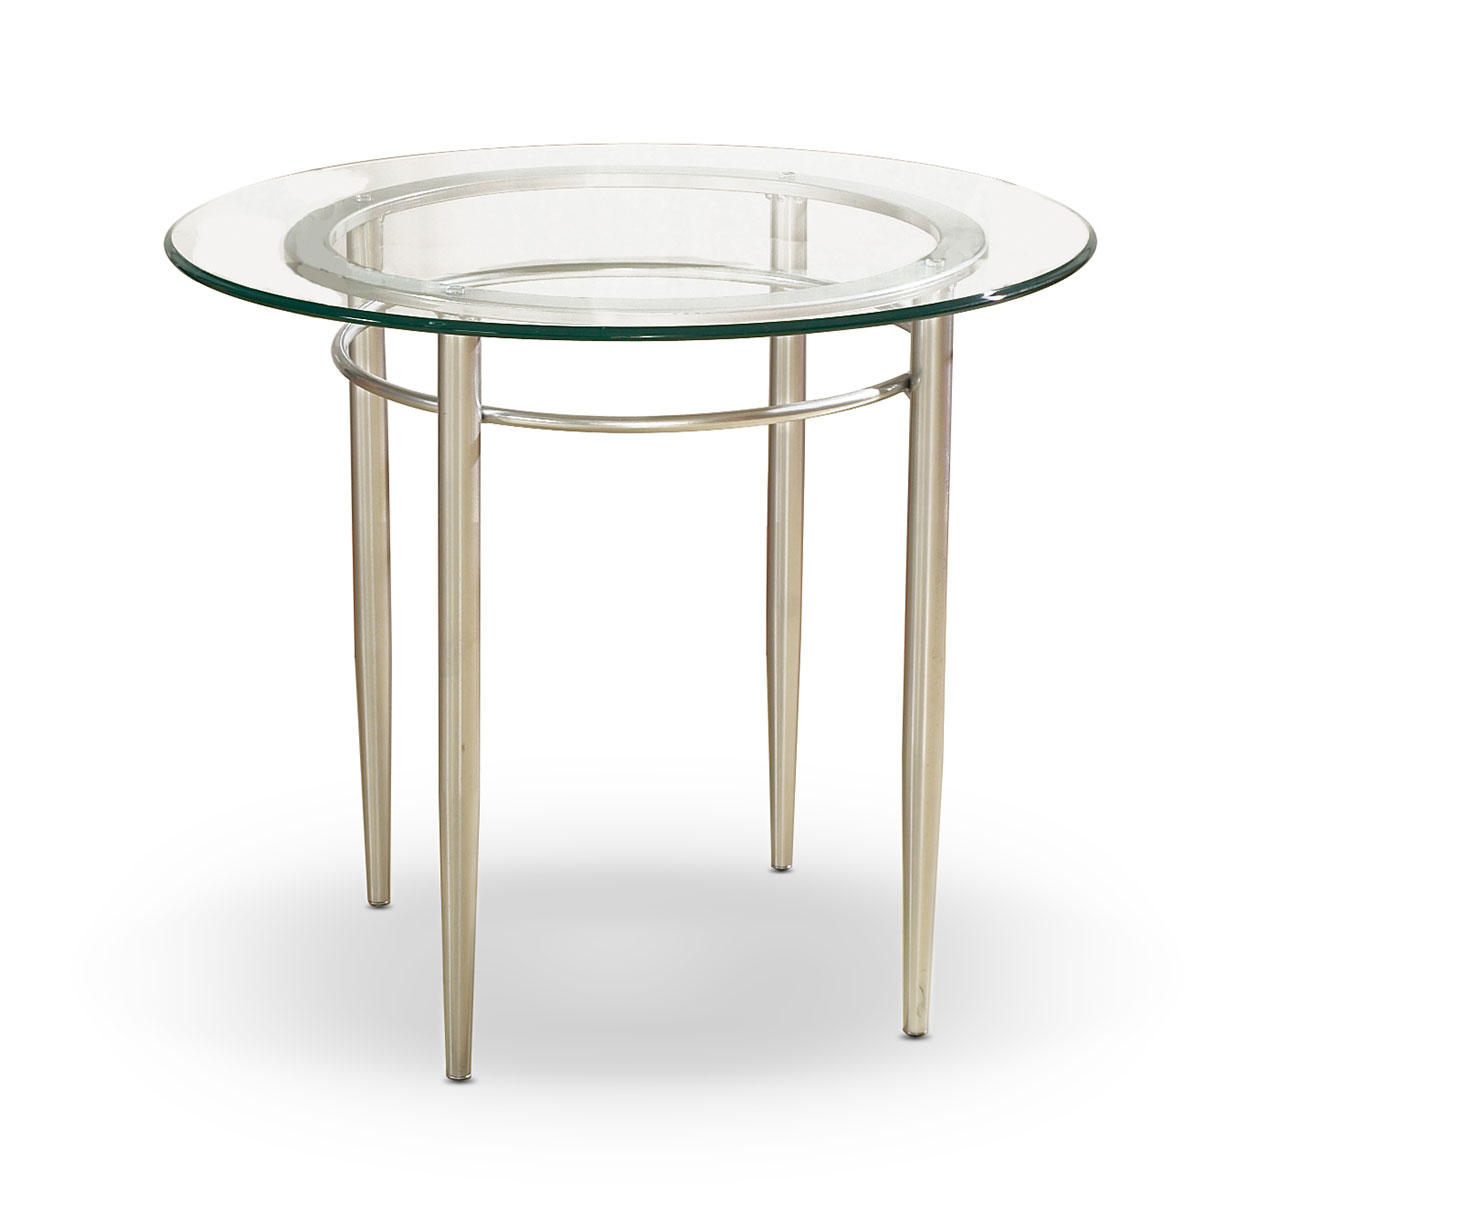 Great Malibu Occasional Tables From HPFi   High Point Furniture Industries